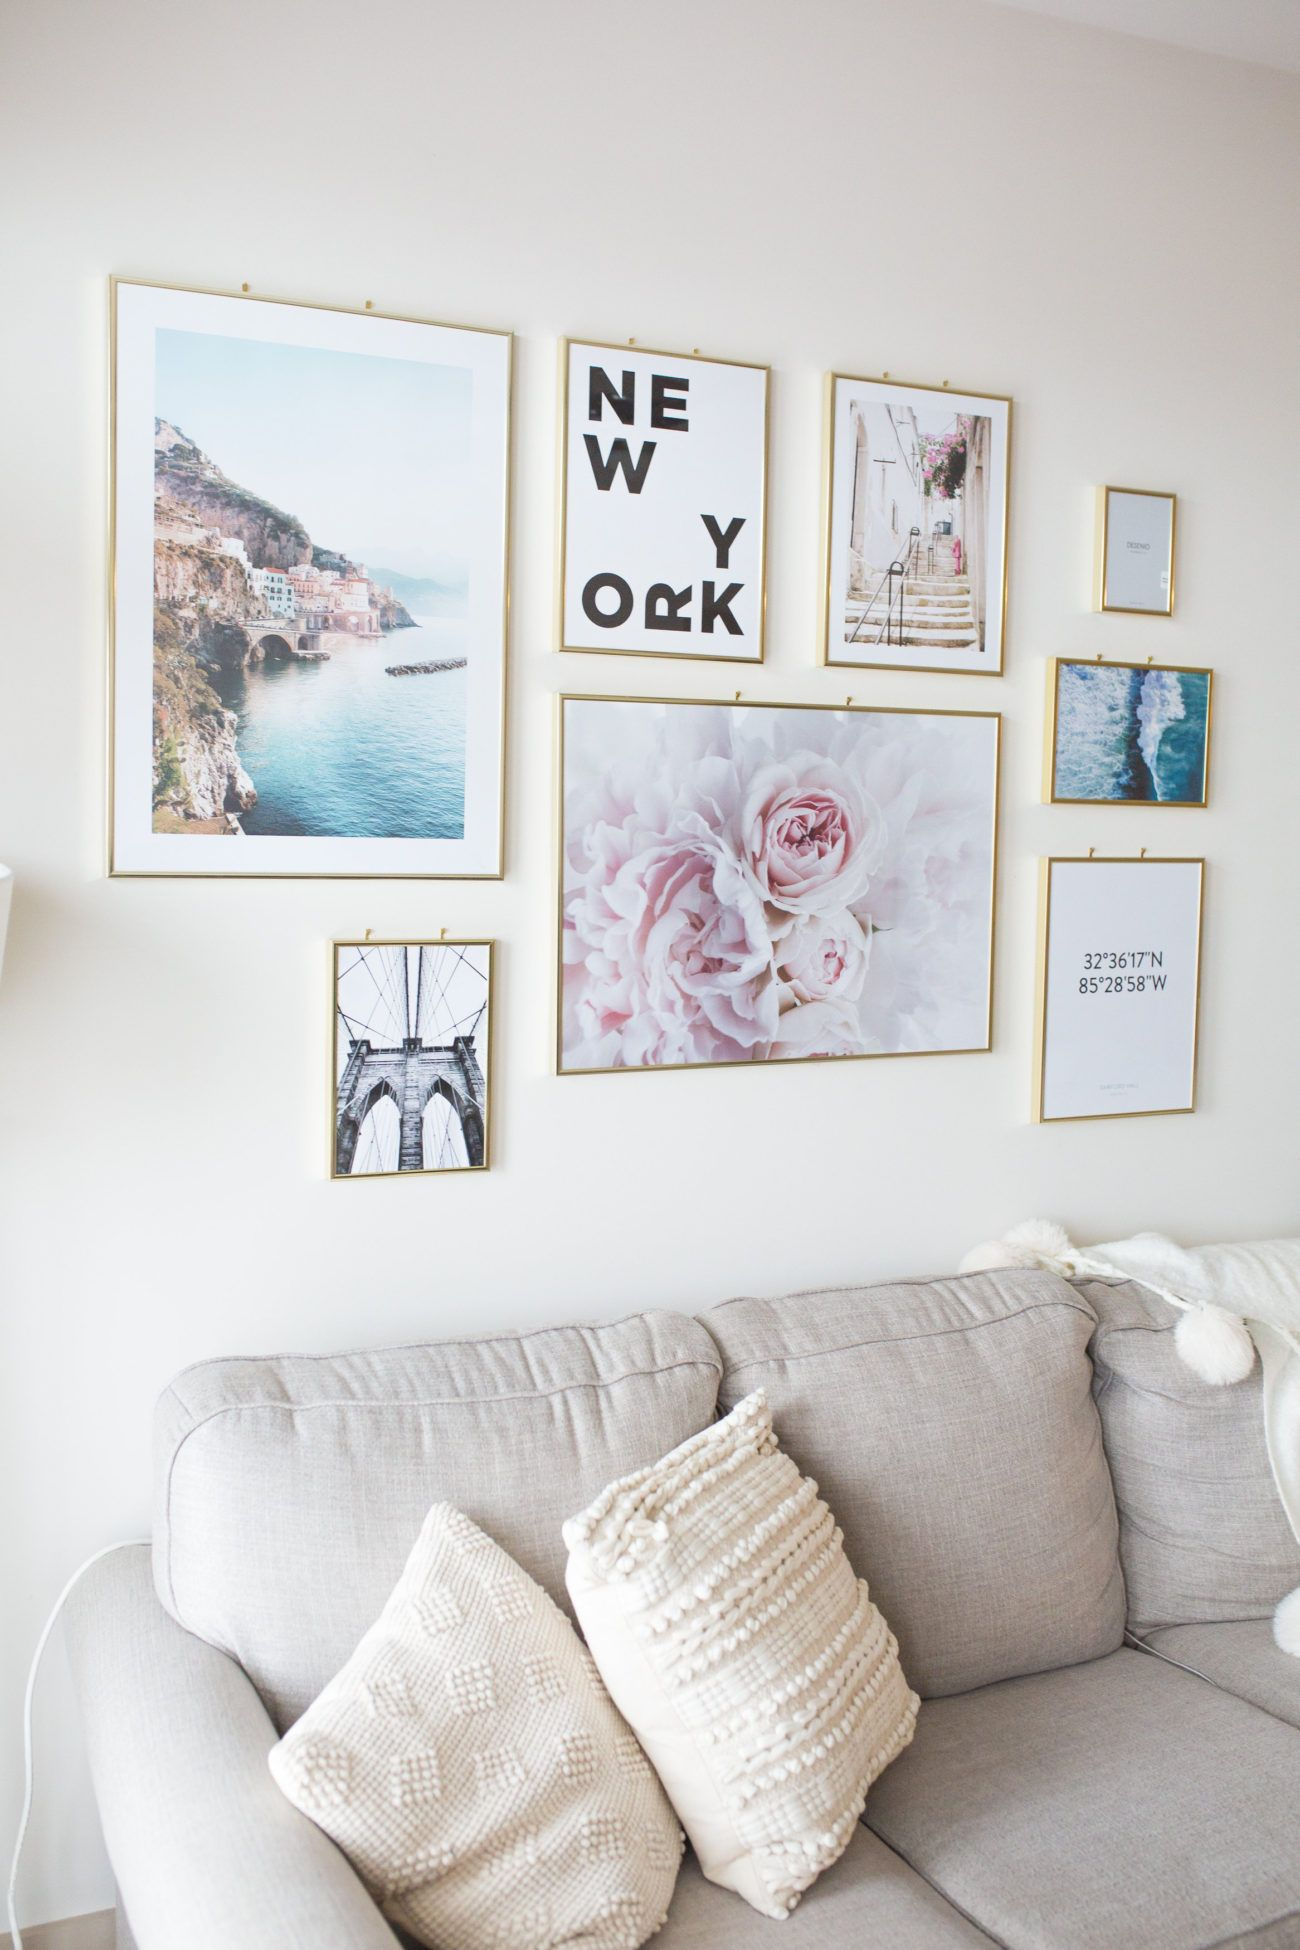 How To Style A Gallery Wall Small Space Inspiration Goodtomicha Gallery Wall Bedroom Gallery Wall Living Room Wall Decor Bedroom